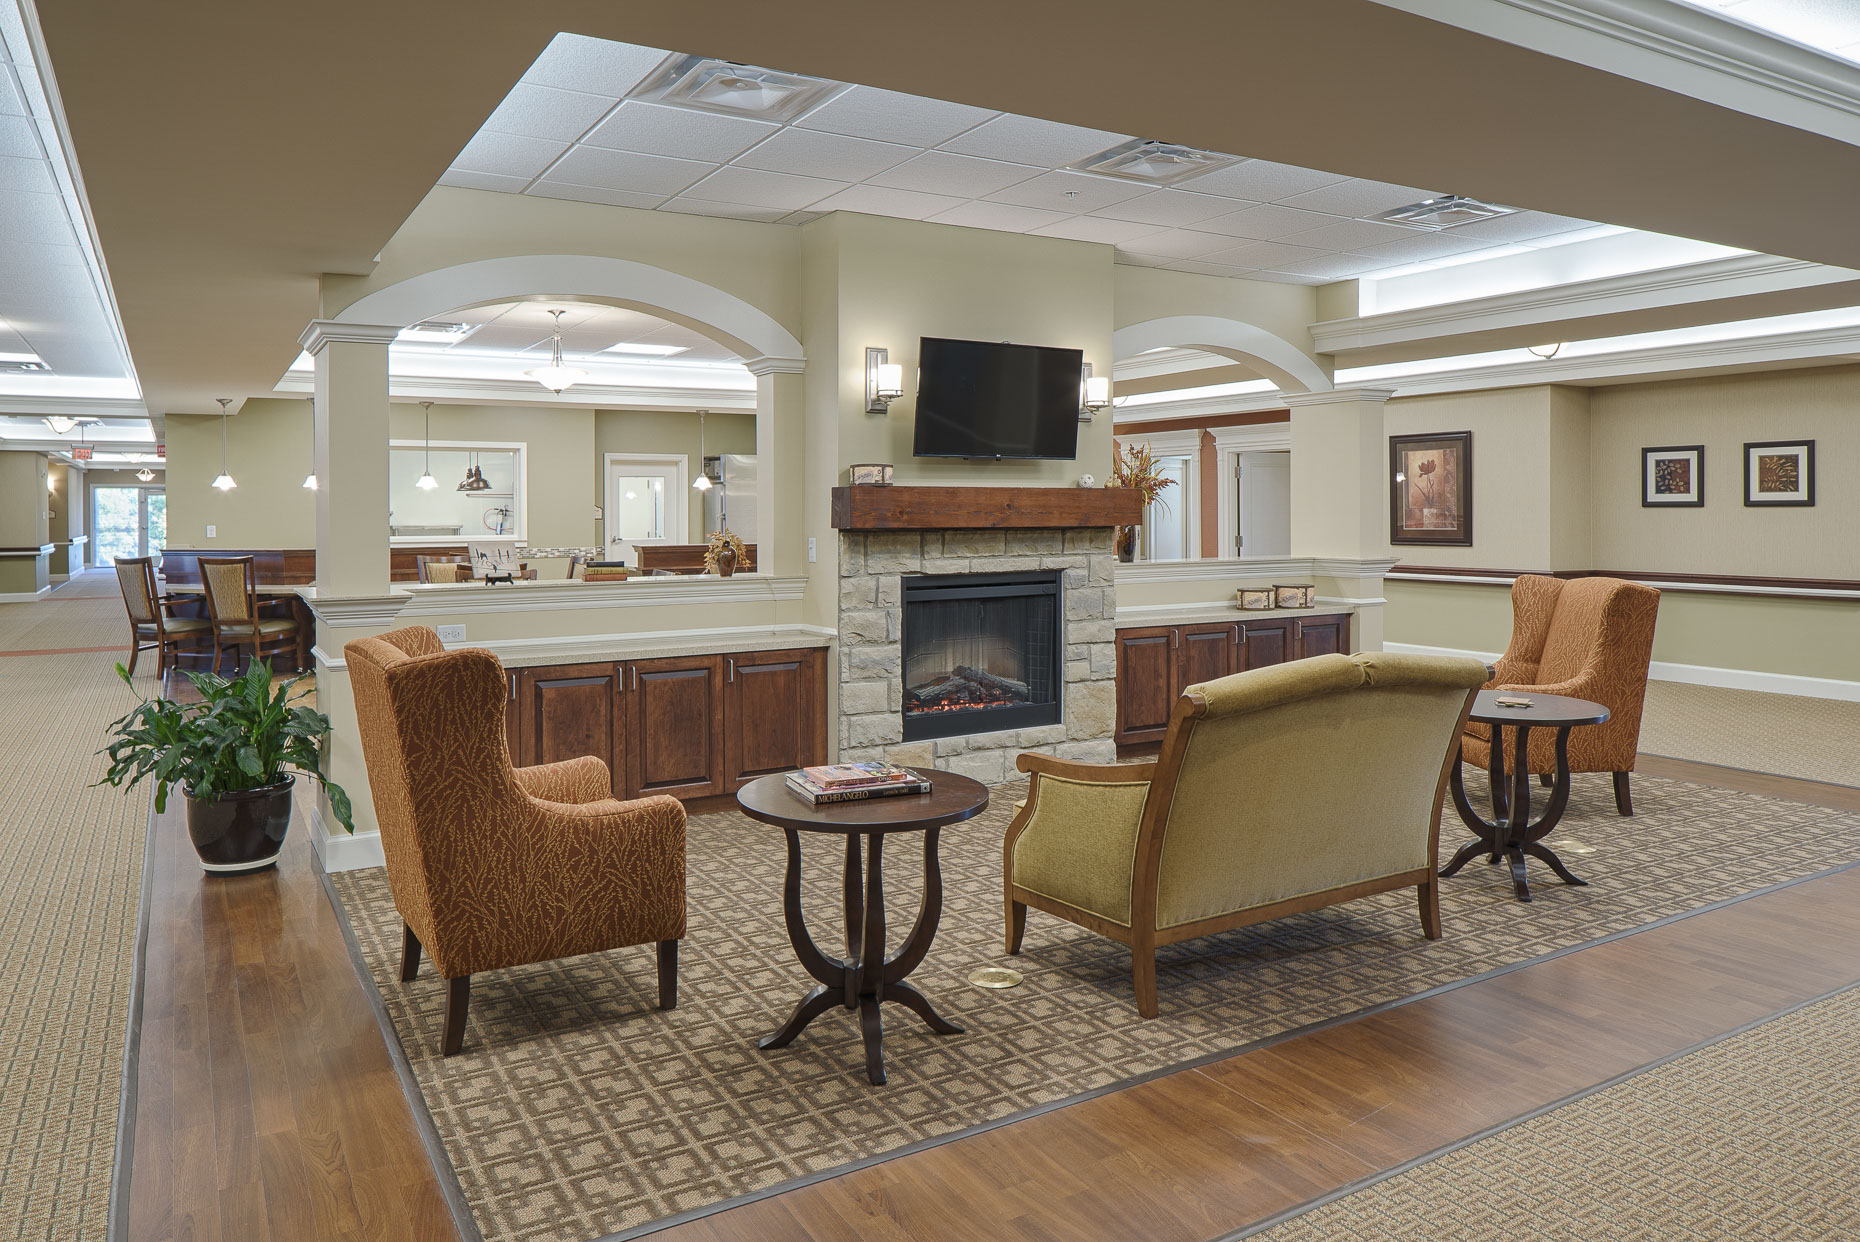 Ohio Eastern Star Nursing Home by Robertson Construction photographed by Lauren K Davis based in Columbus, Ohio